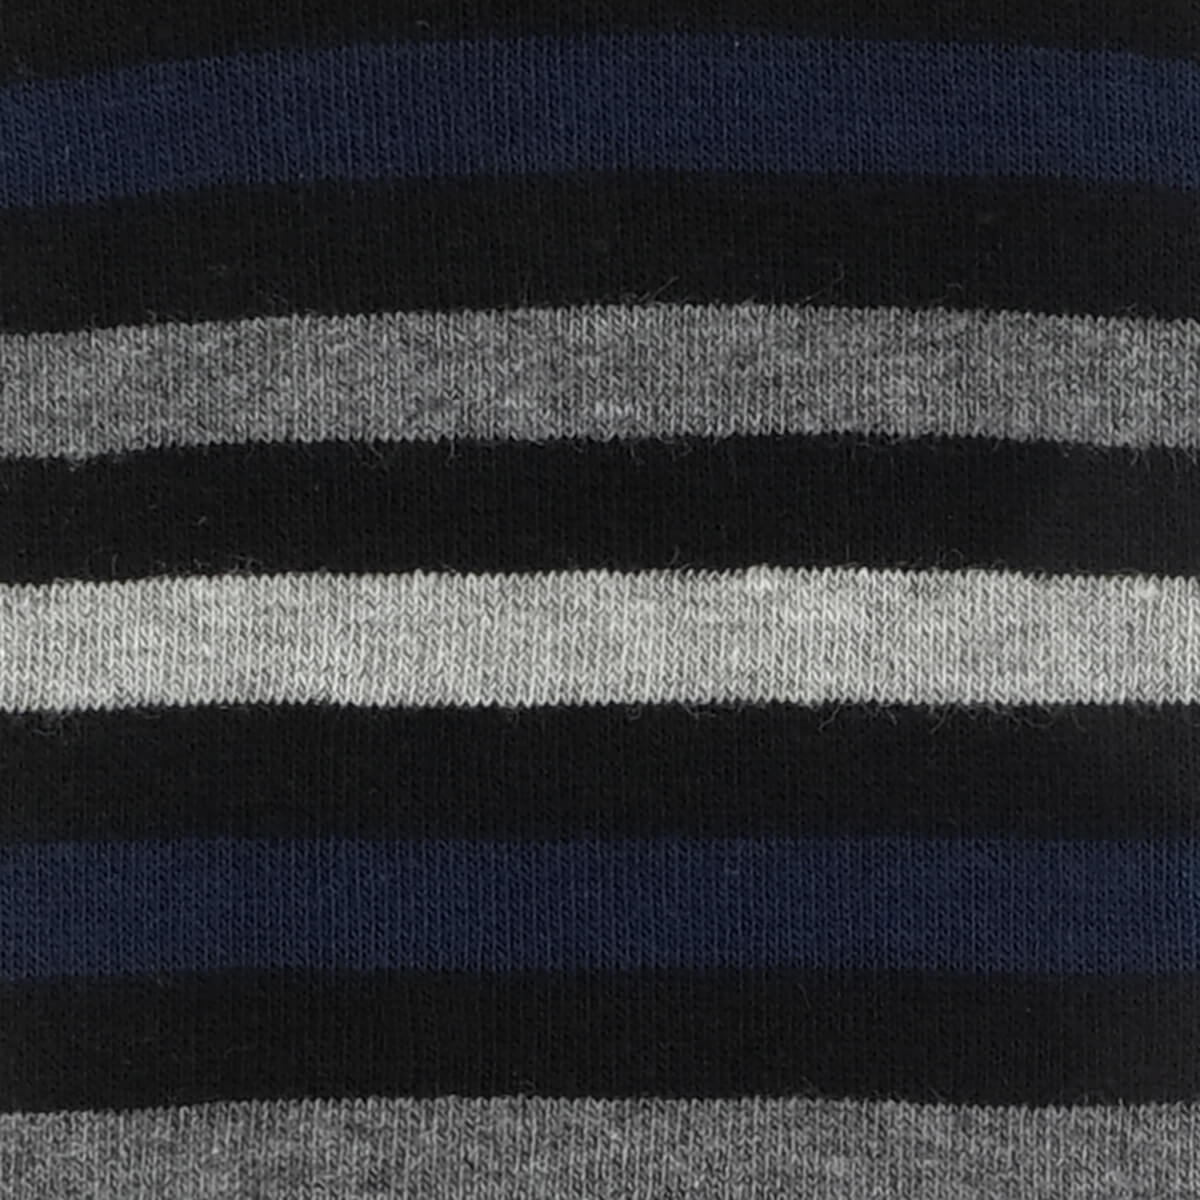 Mens Socks - Crosswalk Stripes Men's Socks - Black⎪Etiquette Clothiers